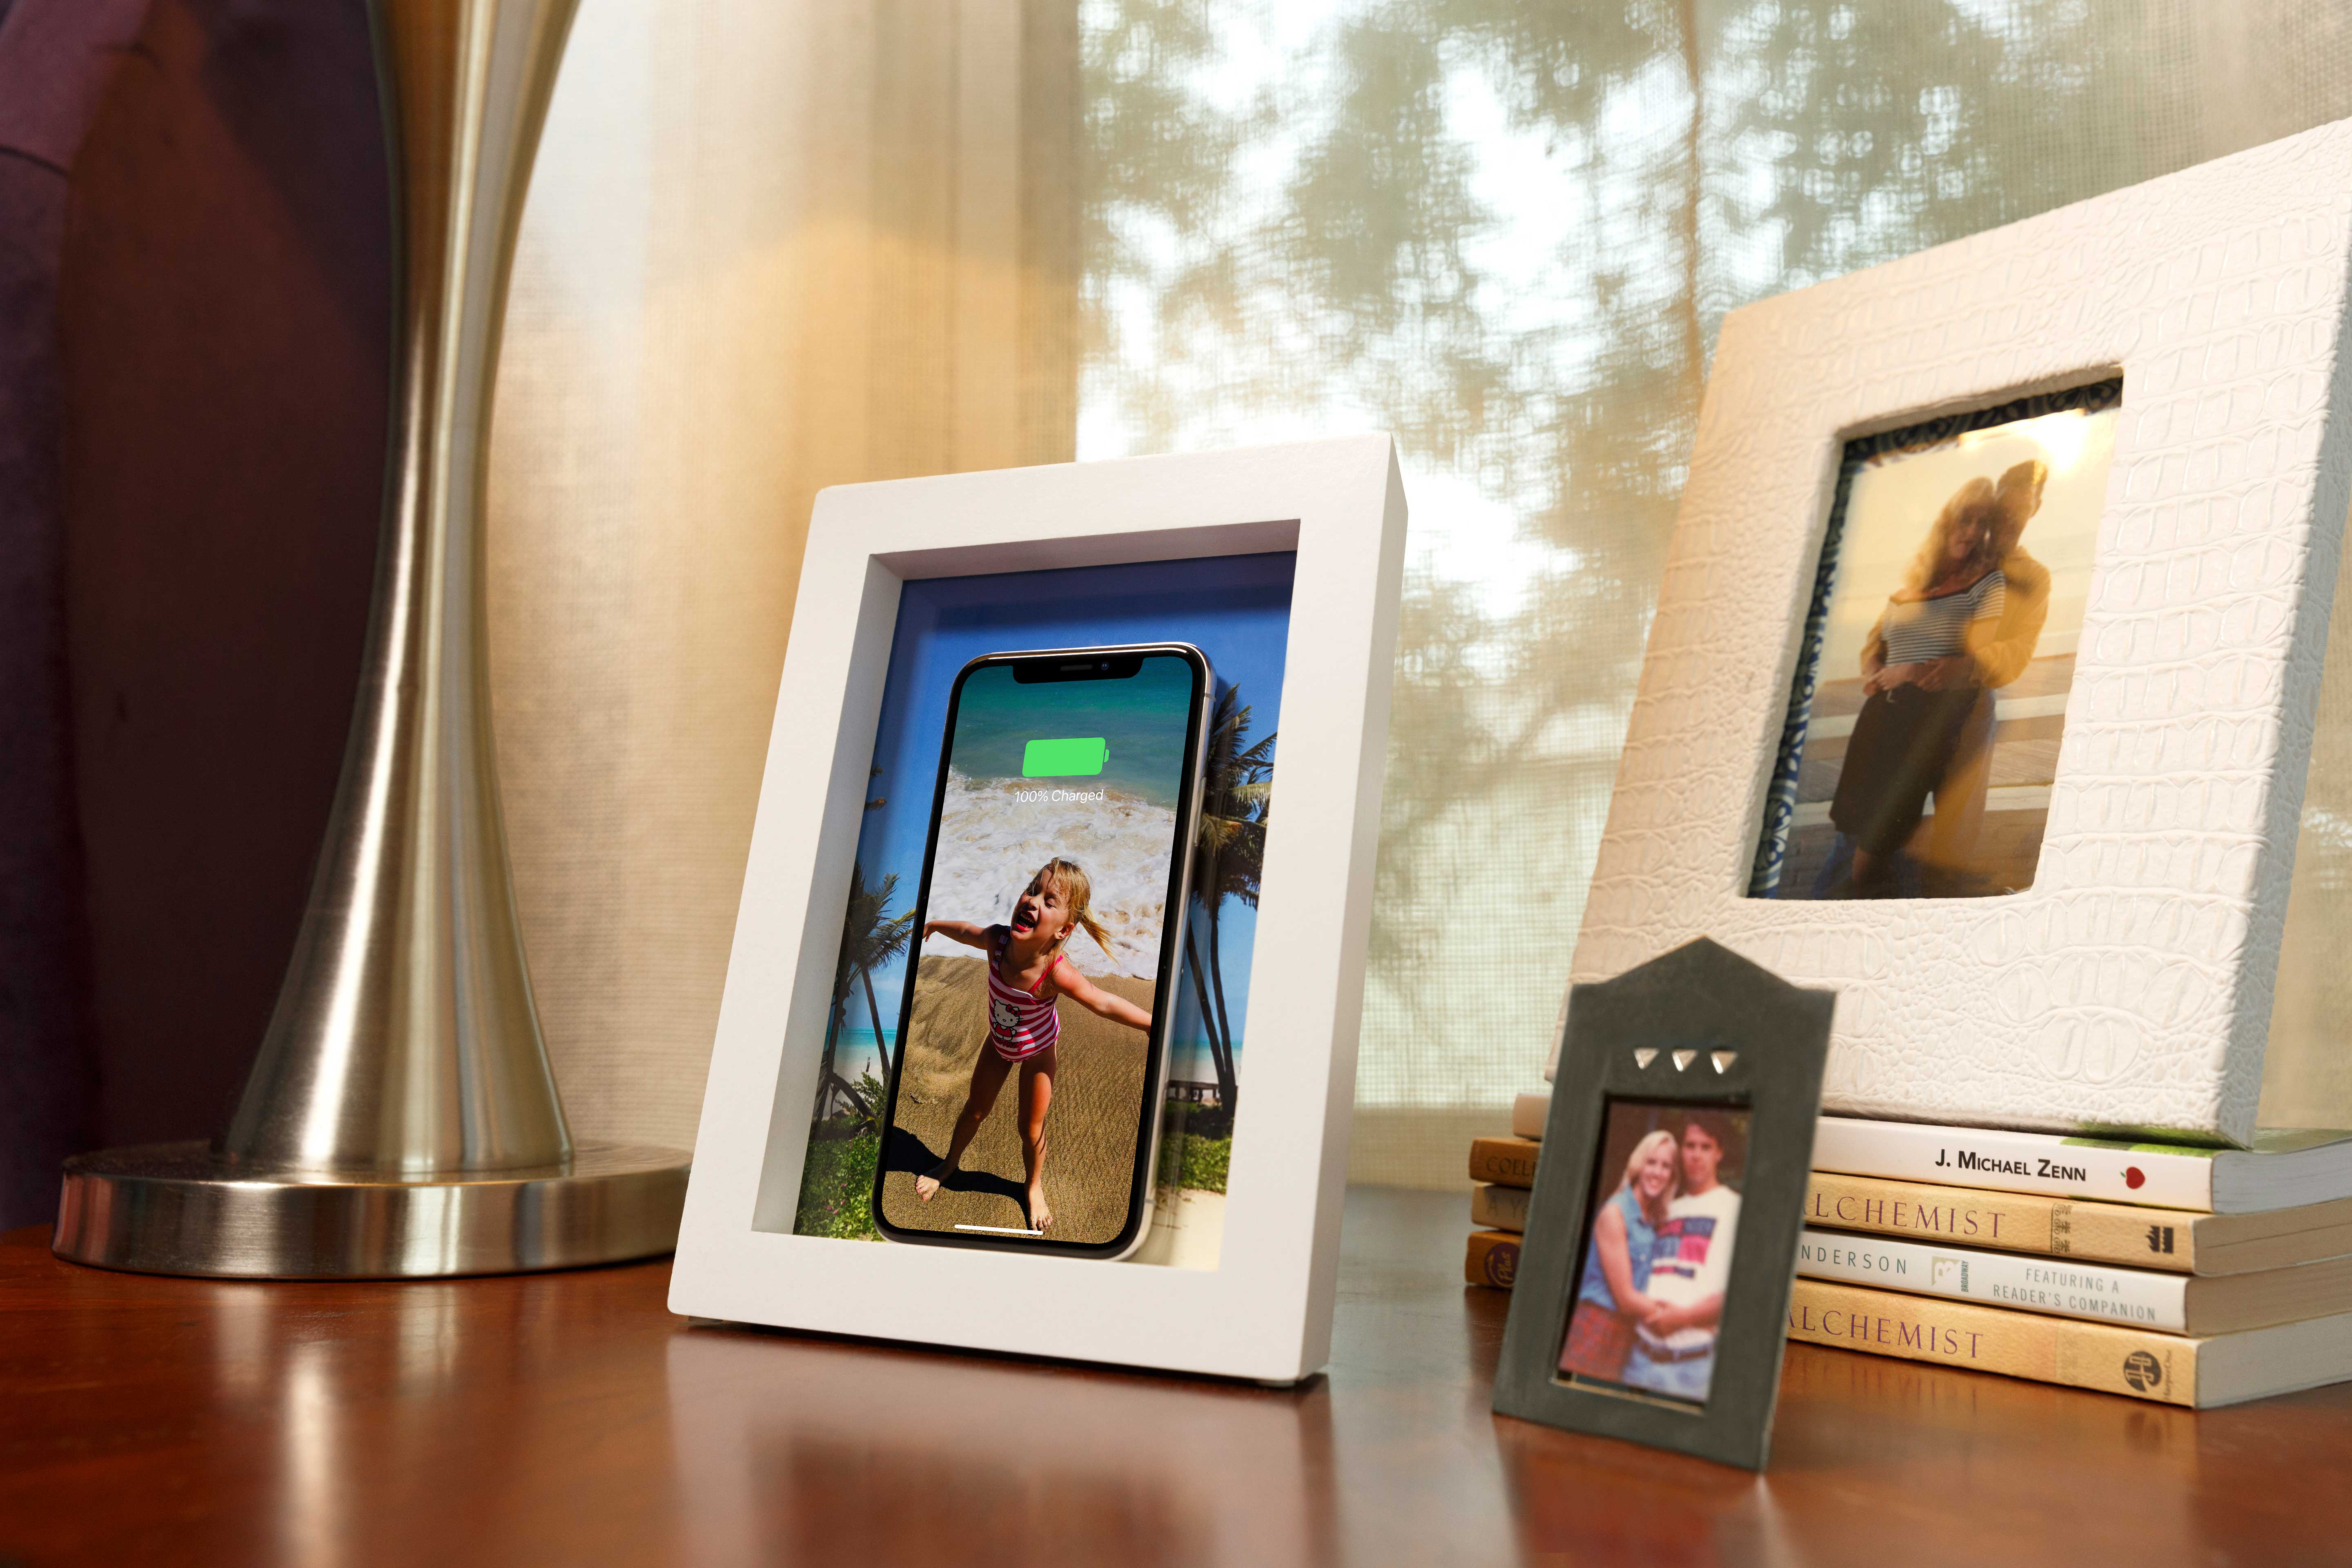 techcrunch.com - Brian Heater - TwelveSouth put a wireless charger in a picture frame